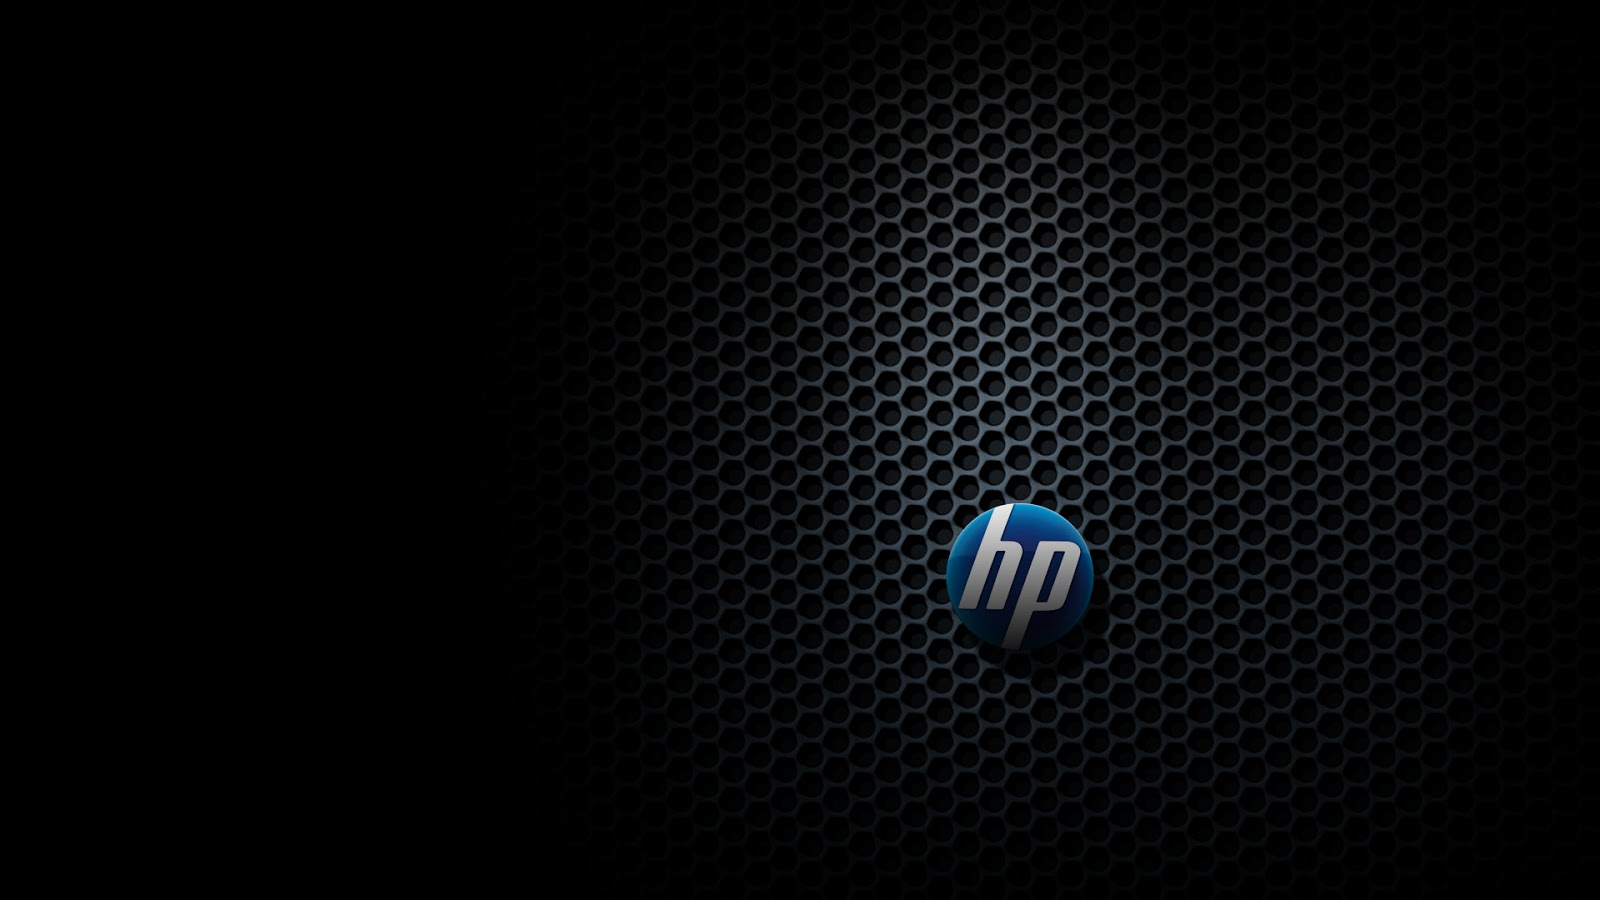 hp wallpapers - photo #6